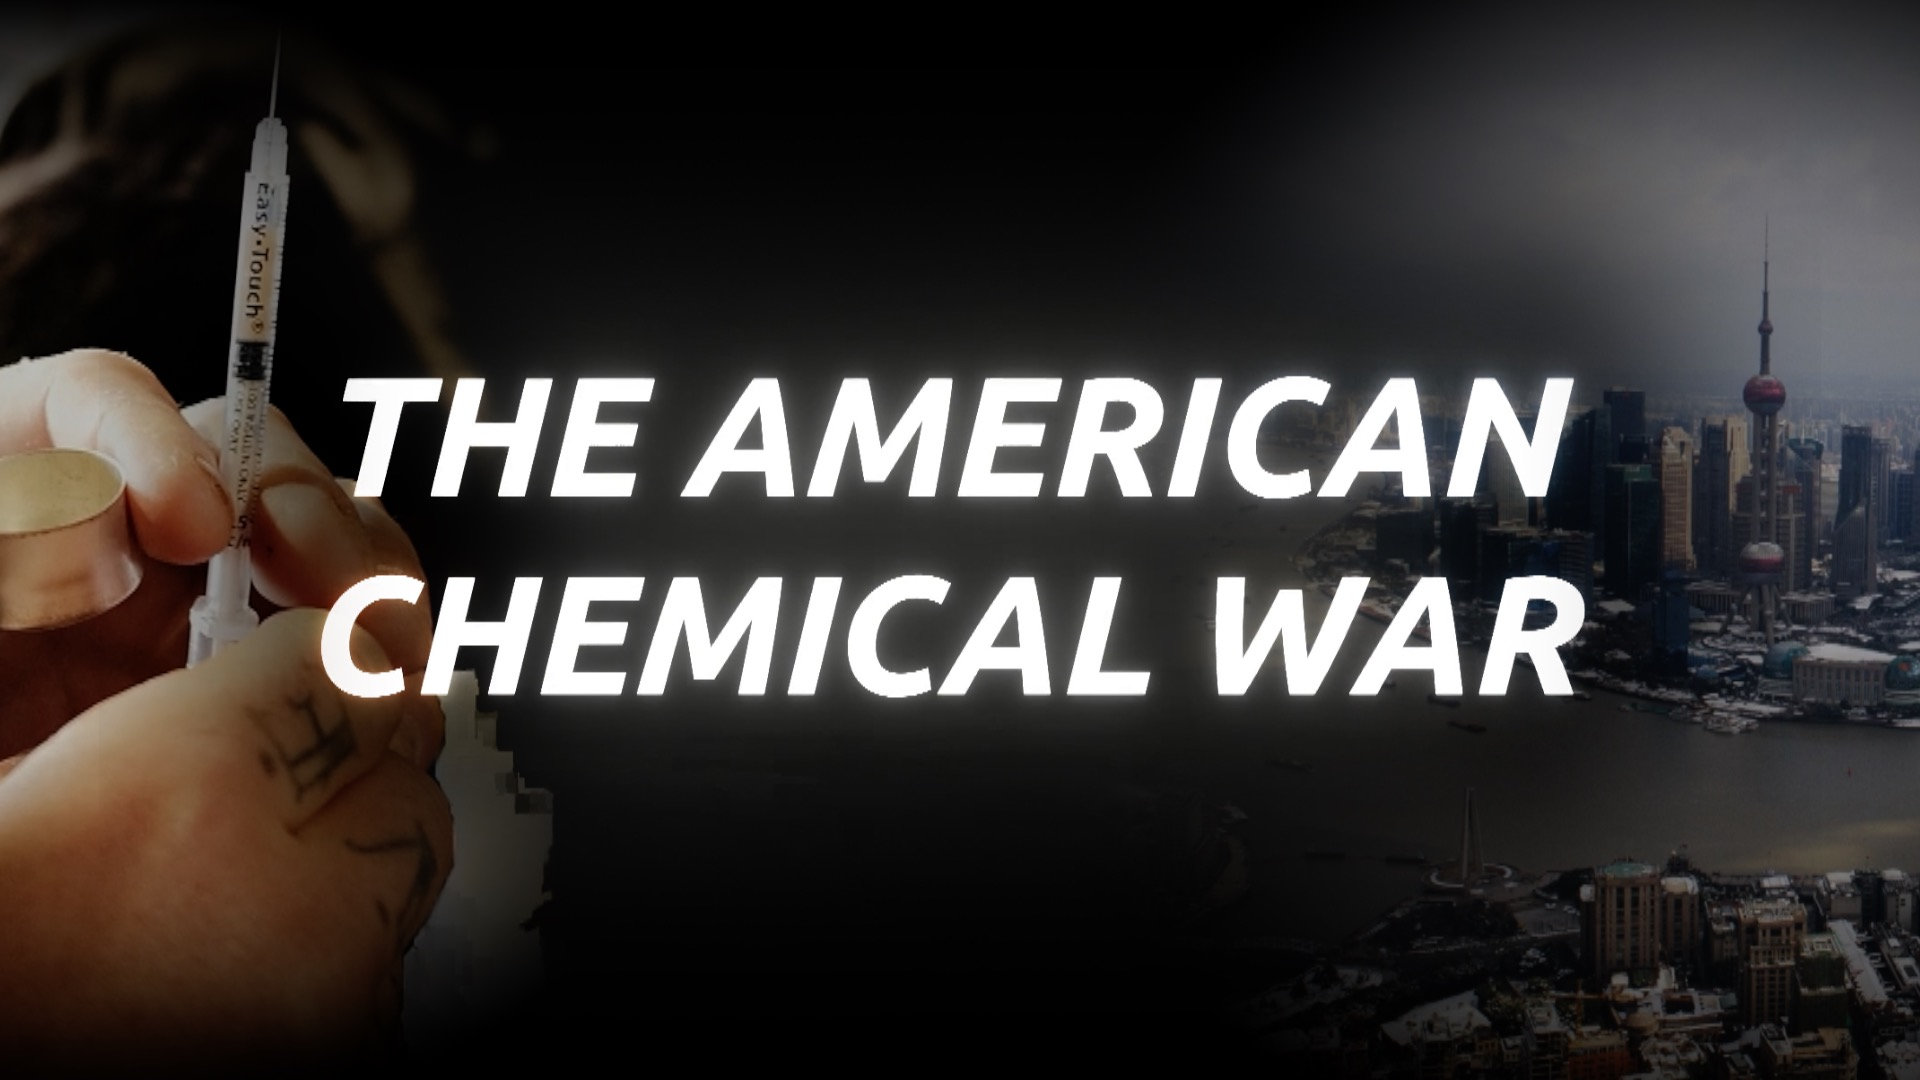 Fentanyl, China, and The American Chemical War